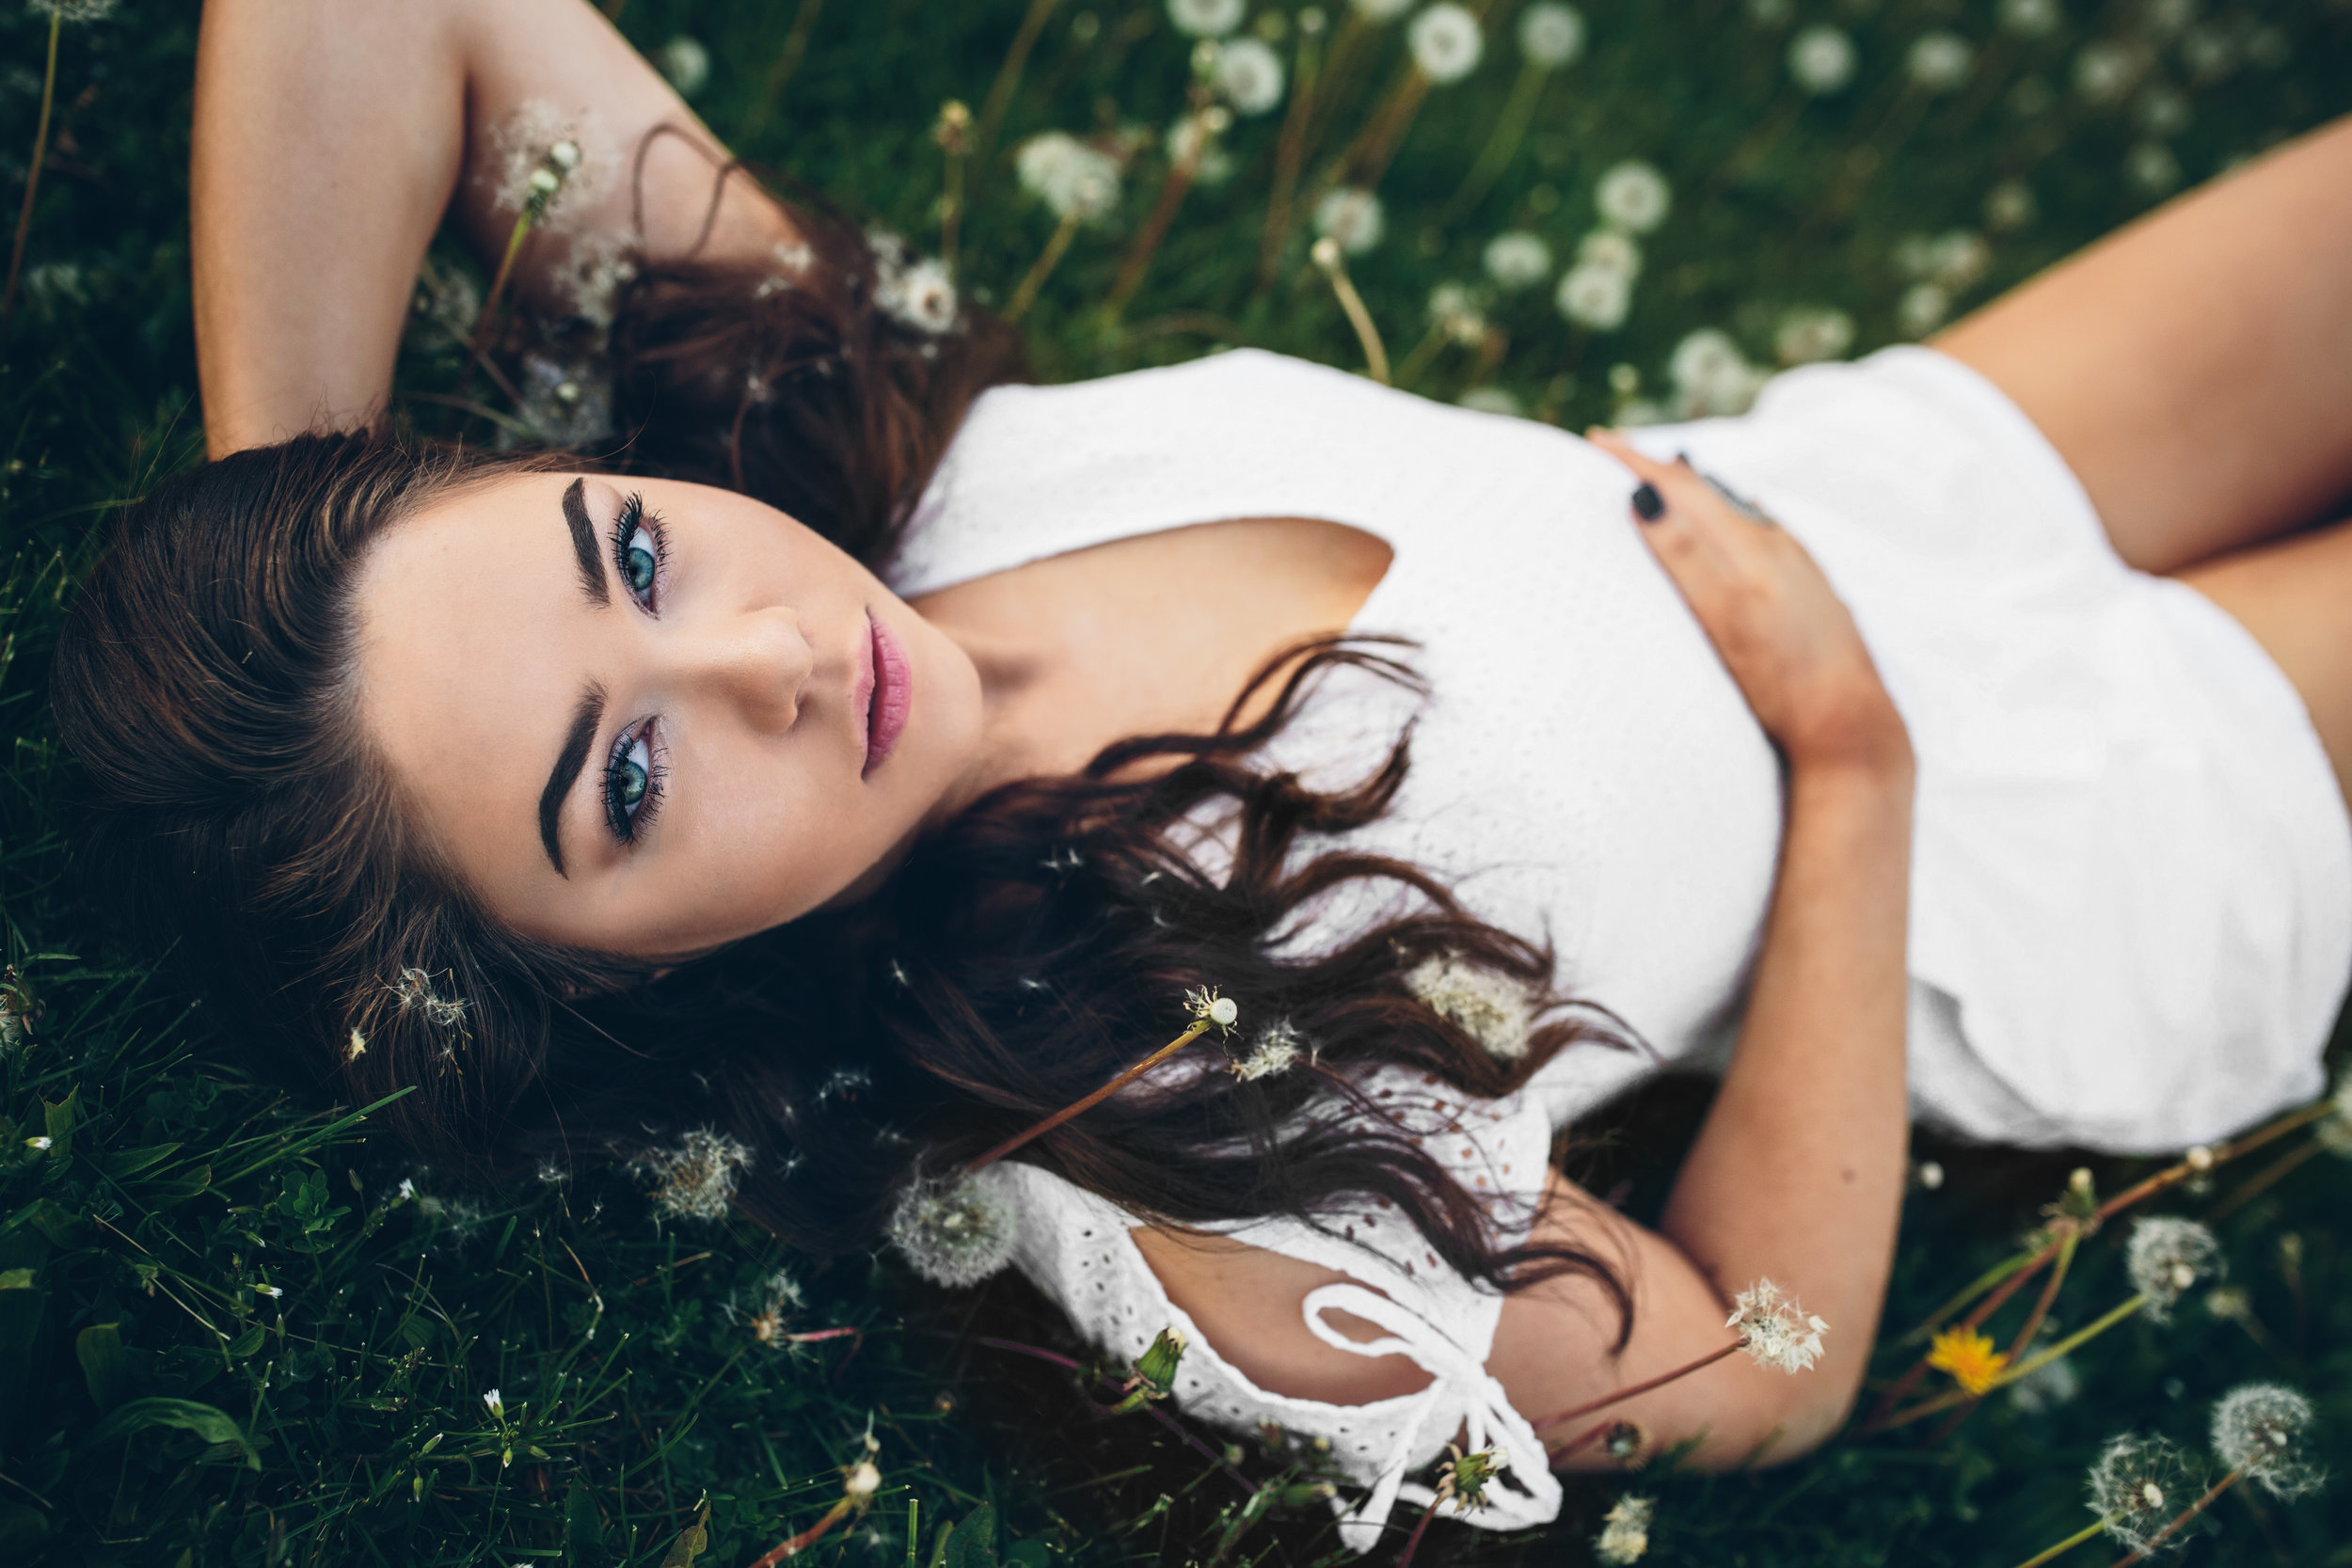 Girl lying down in a field of dandelions. Senior Pictures Madison, WI.